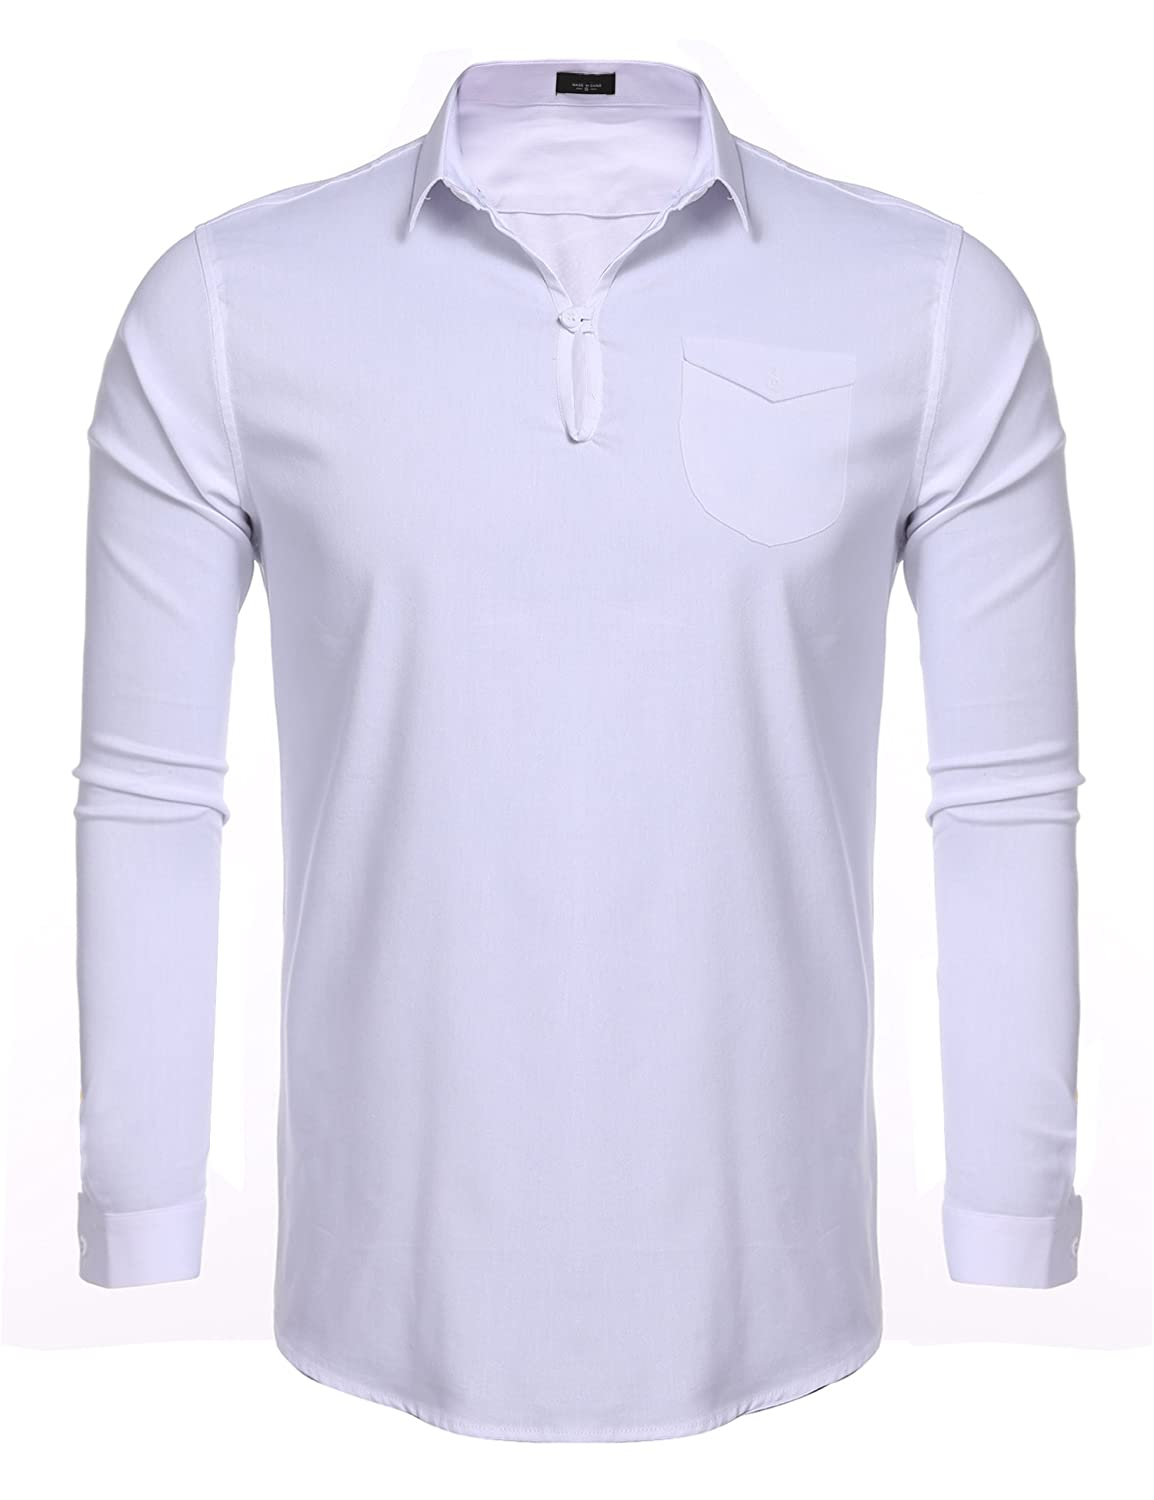 1960s Inspired Fashion: Recreate the Look Jinidu Mens Summer Linen Cotton Blend V-neck Yoga Beach Top Slim Fit Polo Shirt With Pocket $24.99 AT vintagedancer.com